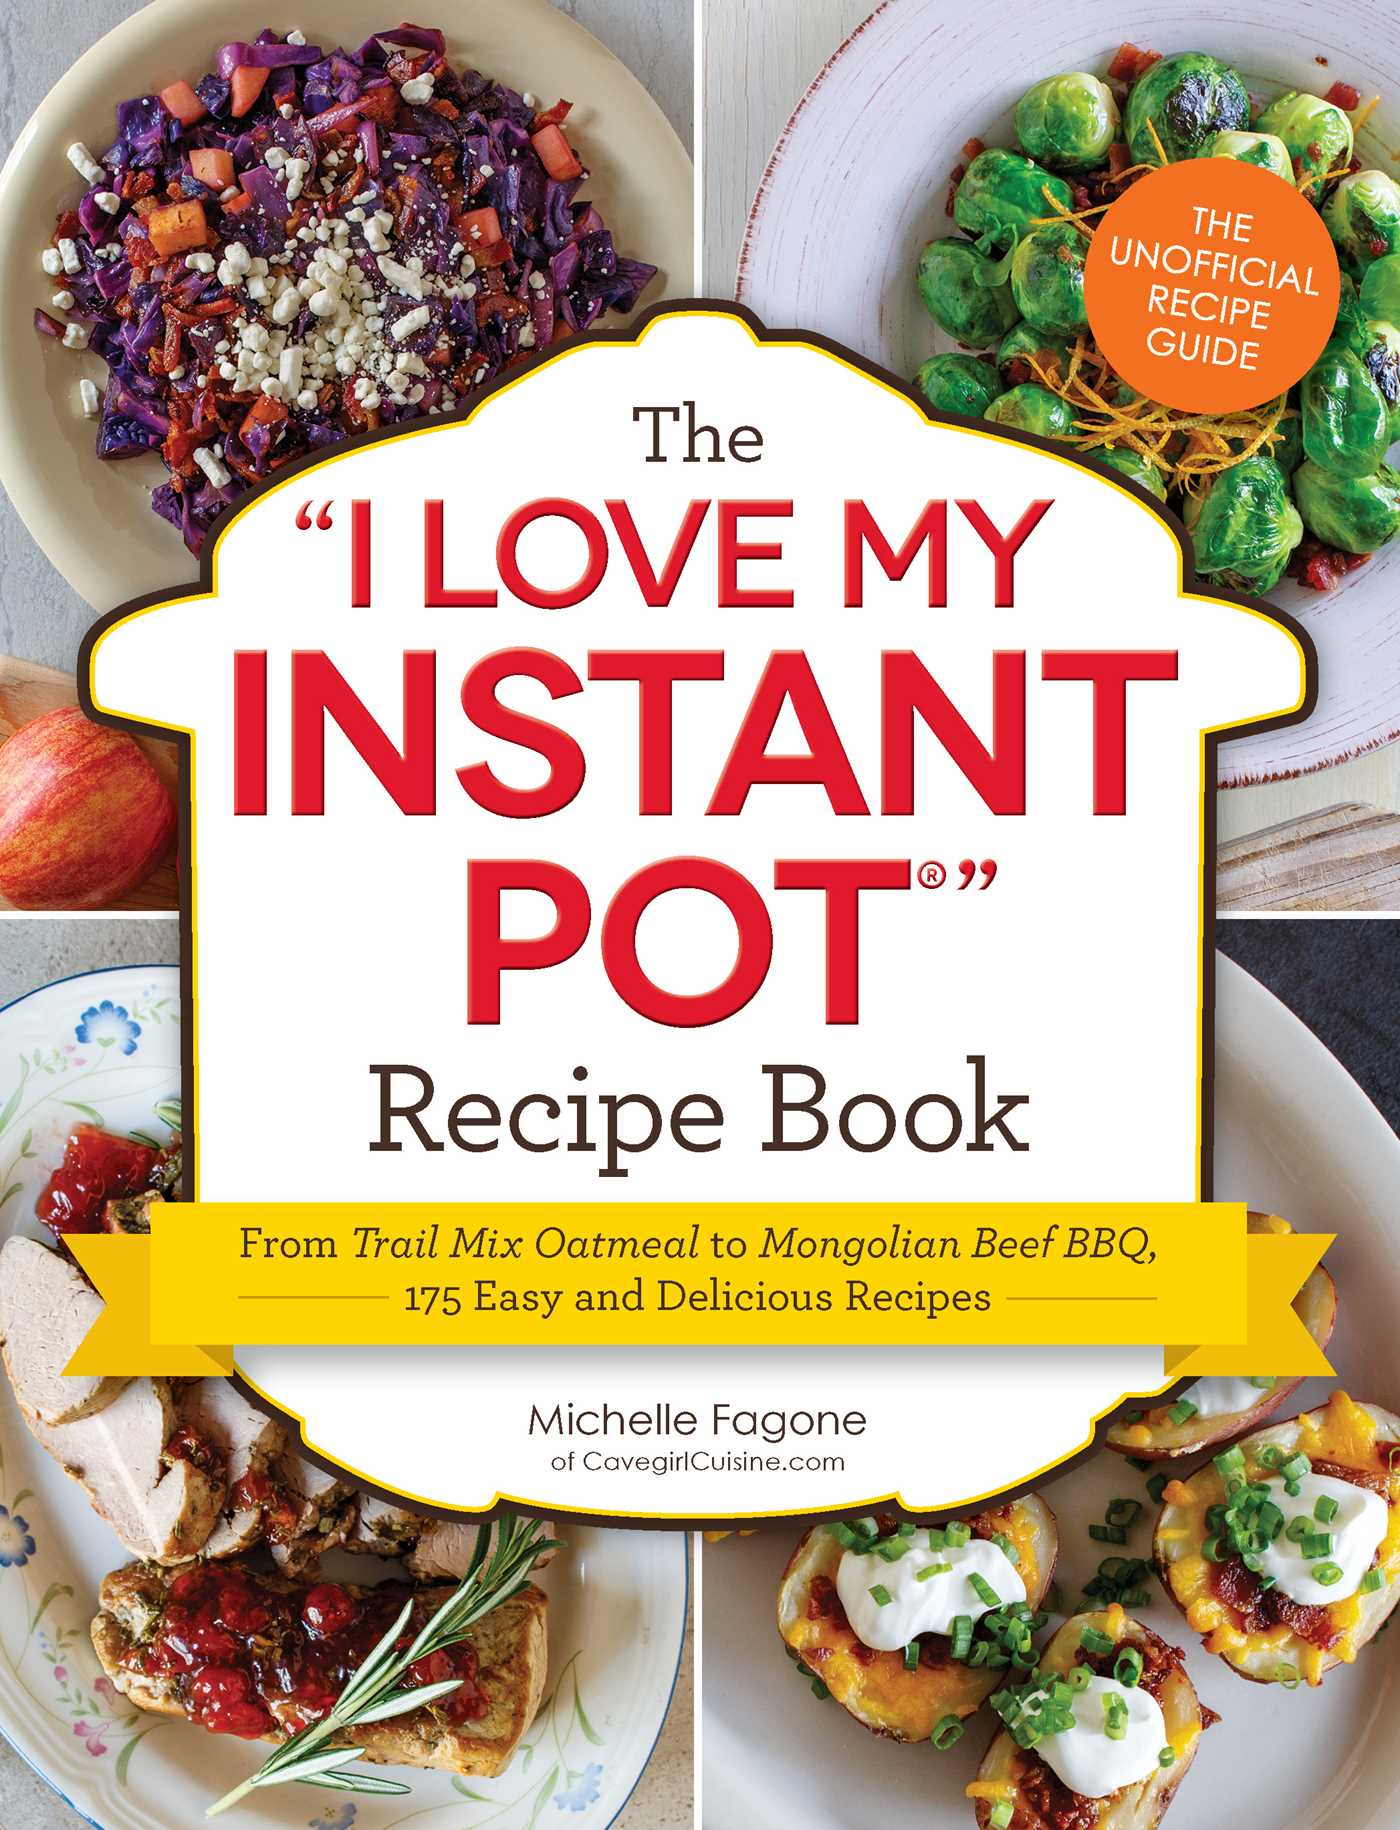 The i love my instant pot recipe book 9781507202289 hr